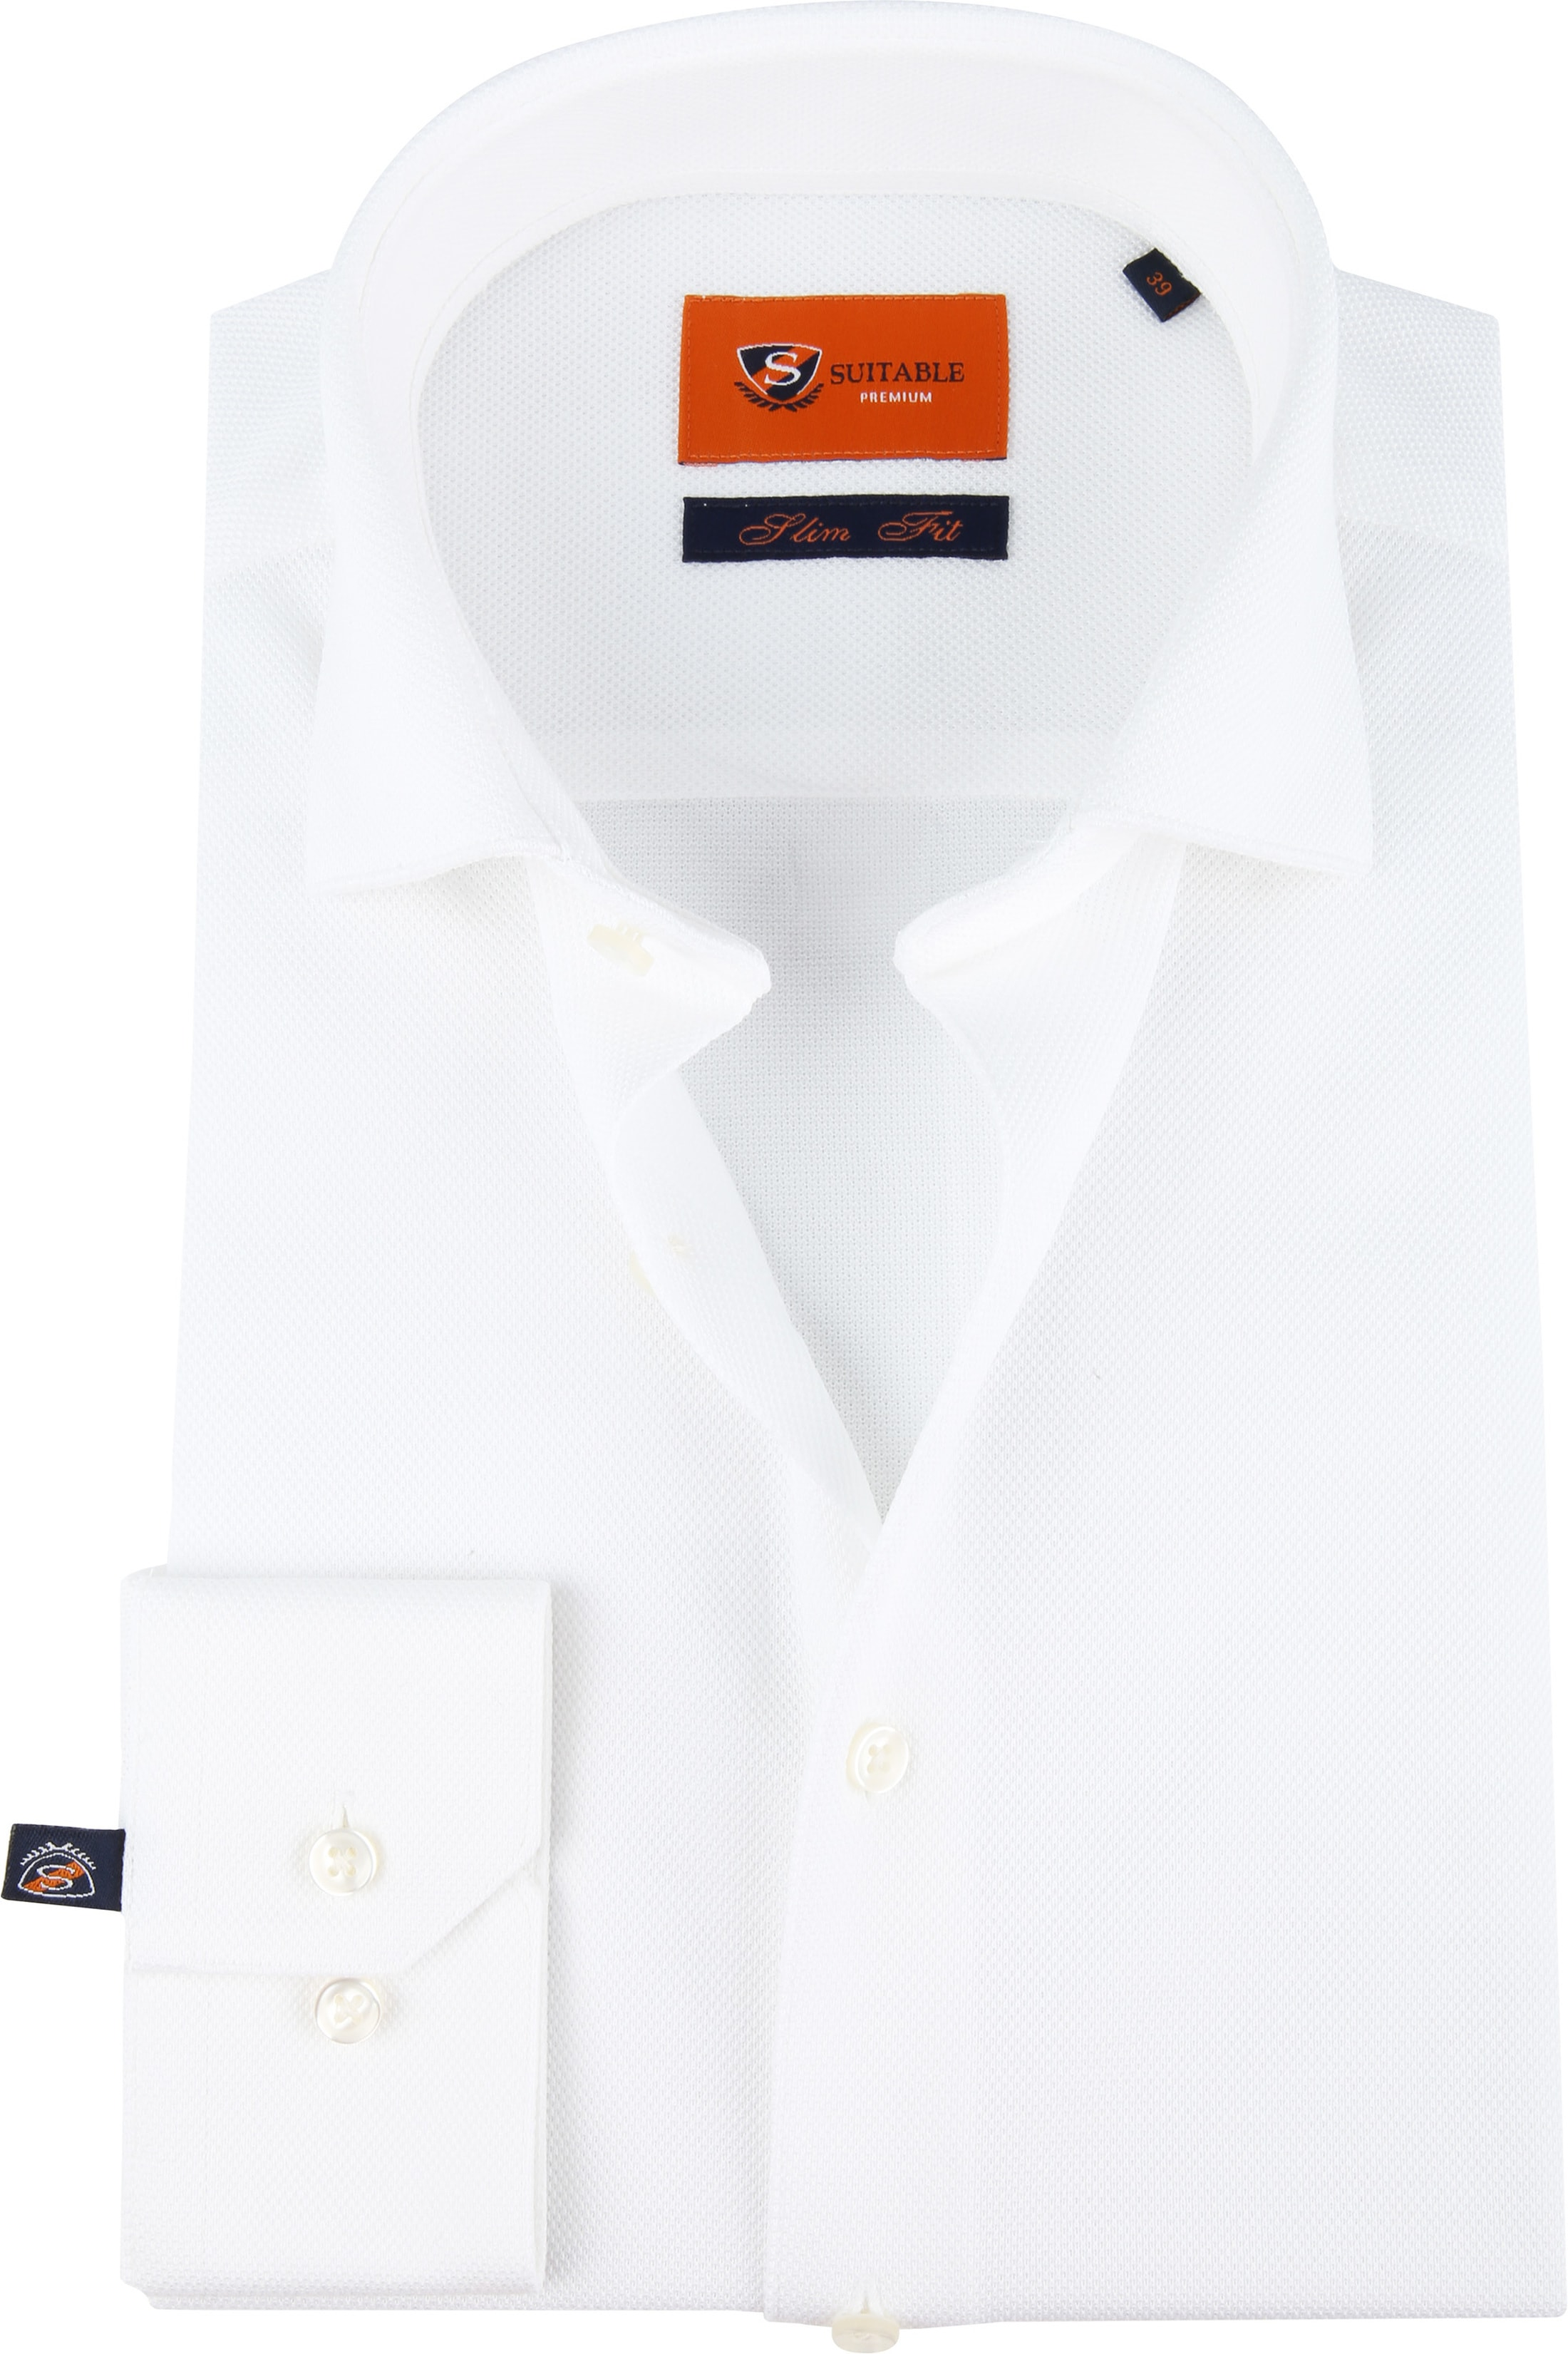 Suitable Jersey Shirt White